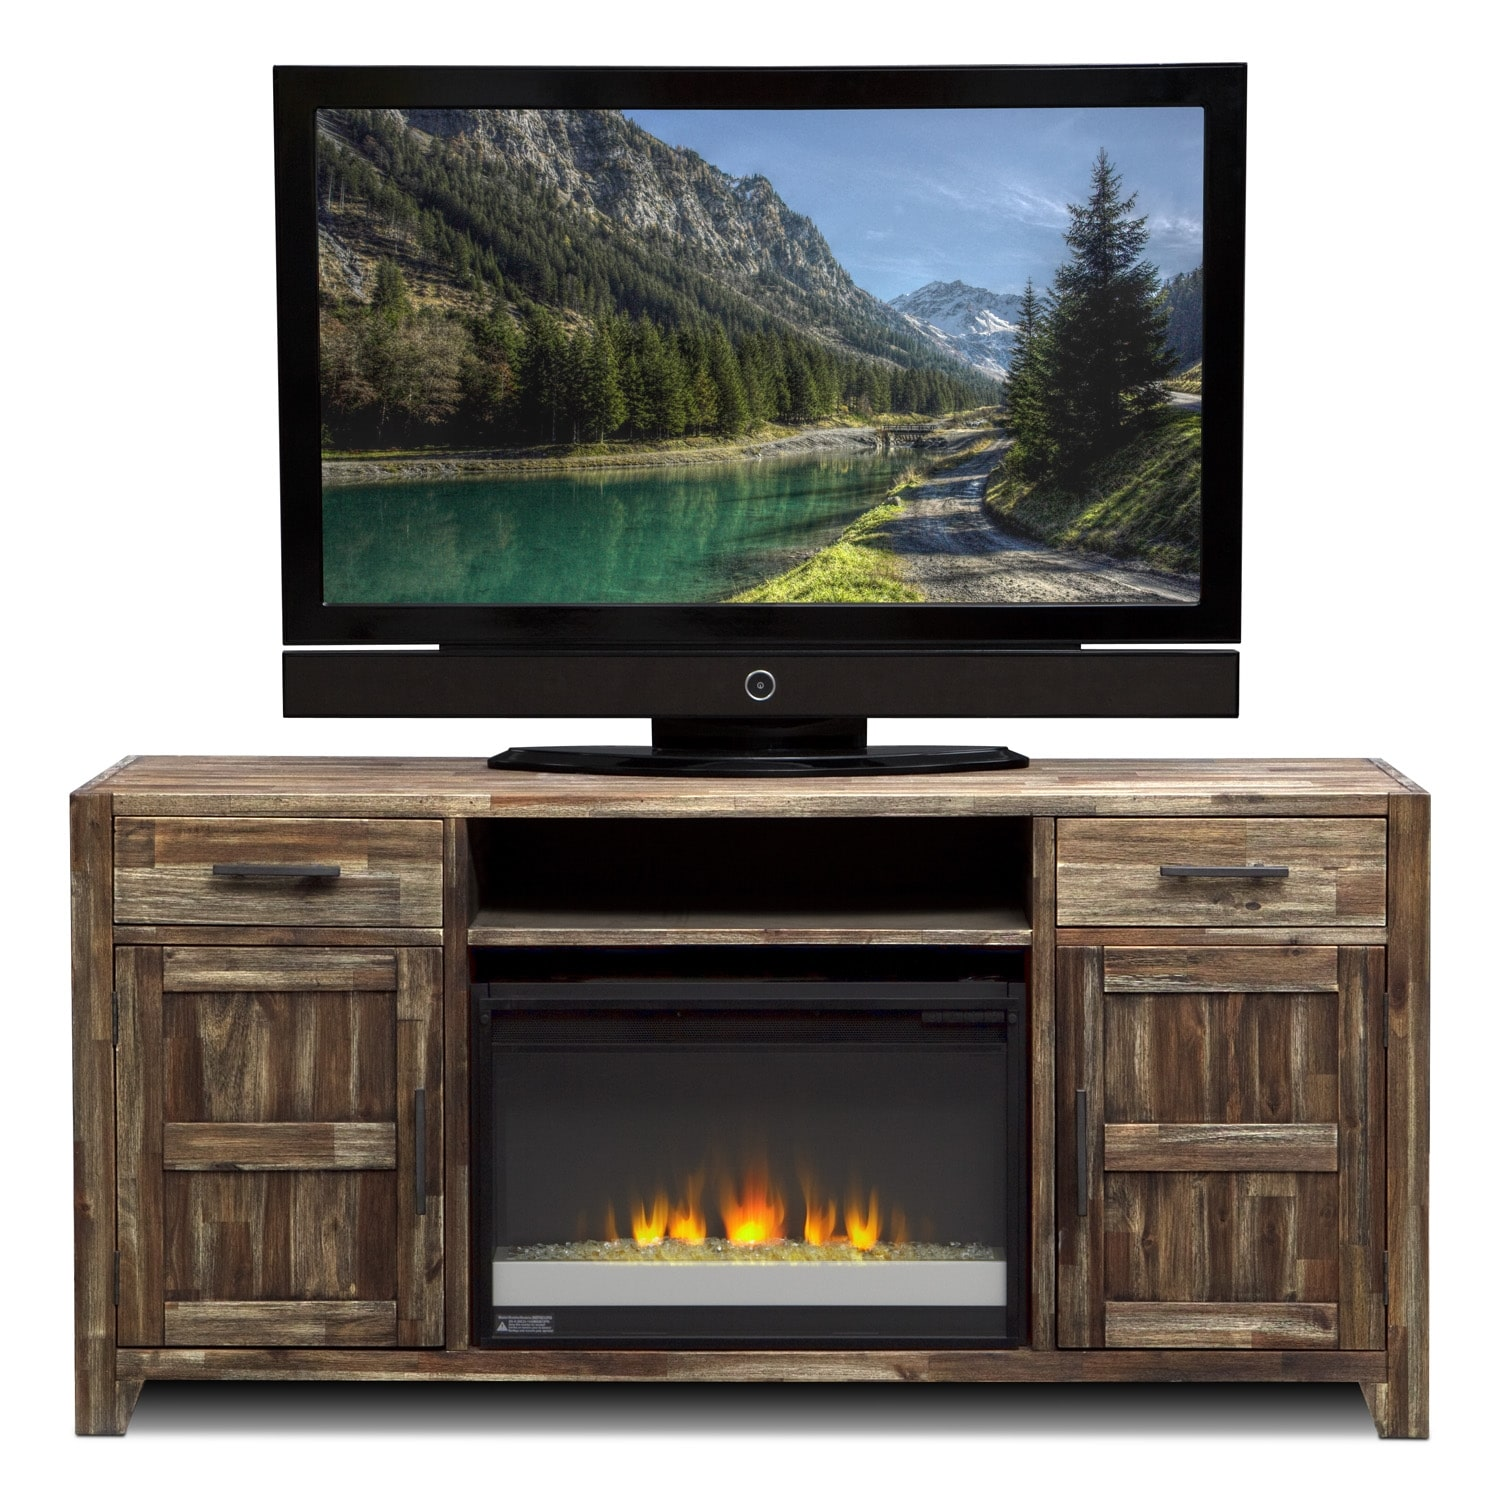 Hutchinson Entertainment Wall Units Fireplace TV Stand